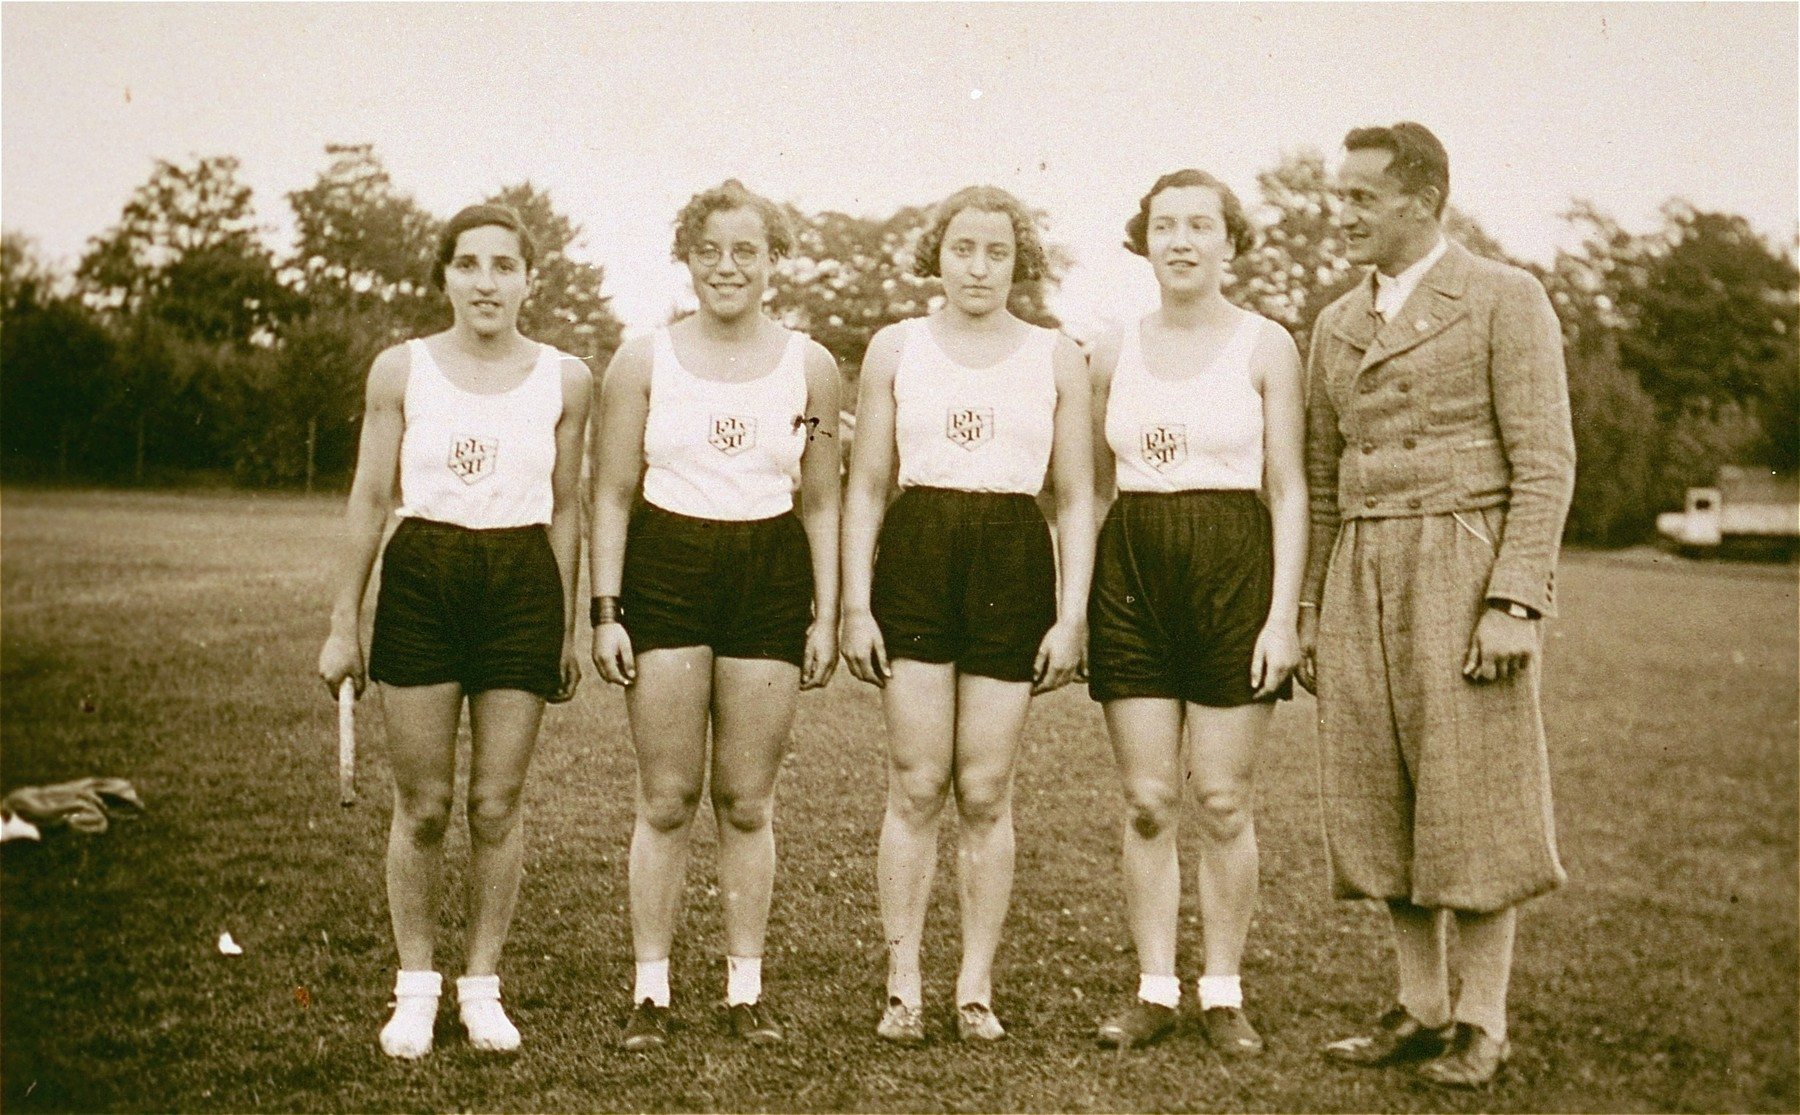 """Four members of the women's handball team sponsored by the  Reichsbund juedischer Frontsoldaten sports club at the West German Meisterschaft competition in Cologne.    Pictured (left to right) are Else Levy; Hedwig (""""Hete"""") Saul and her sister Liesel Saul, from Aachen; and the donor, Ilse Dahl.  Else Levy  survived the Holocaust and immigrated to England."""